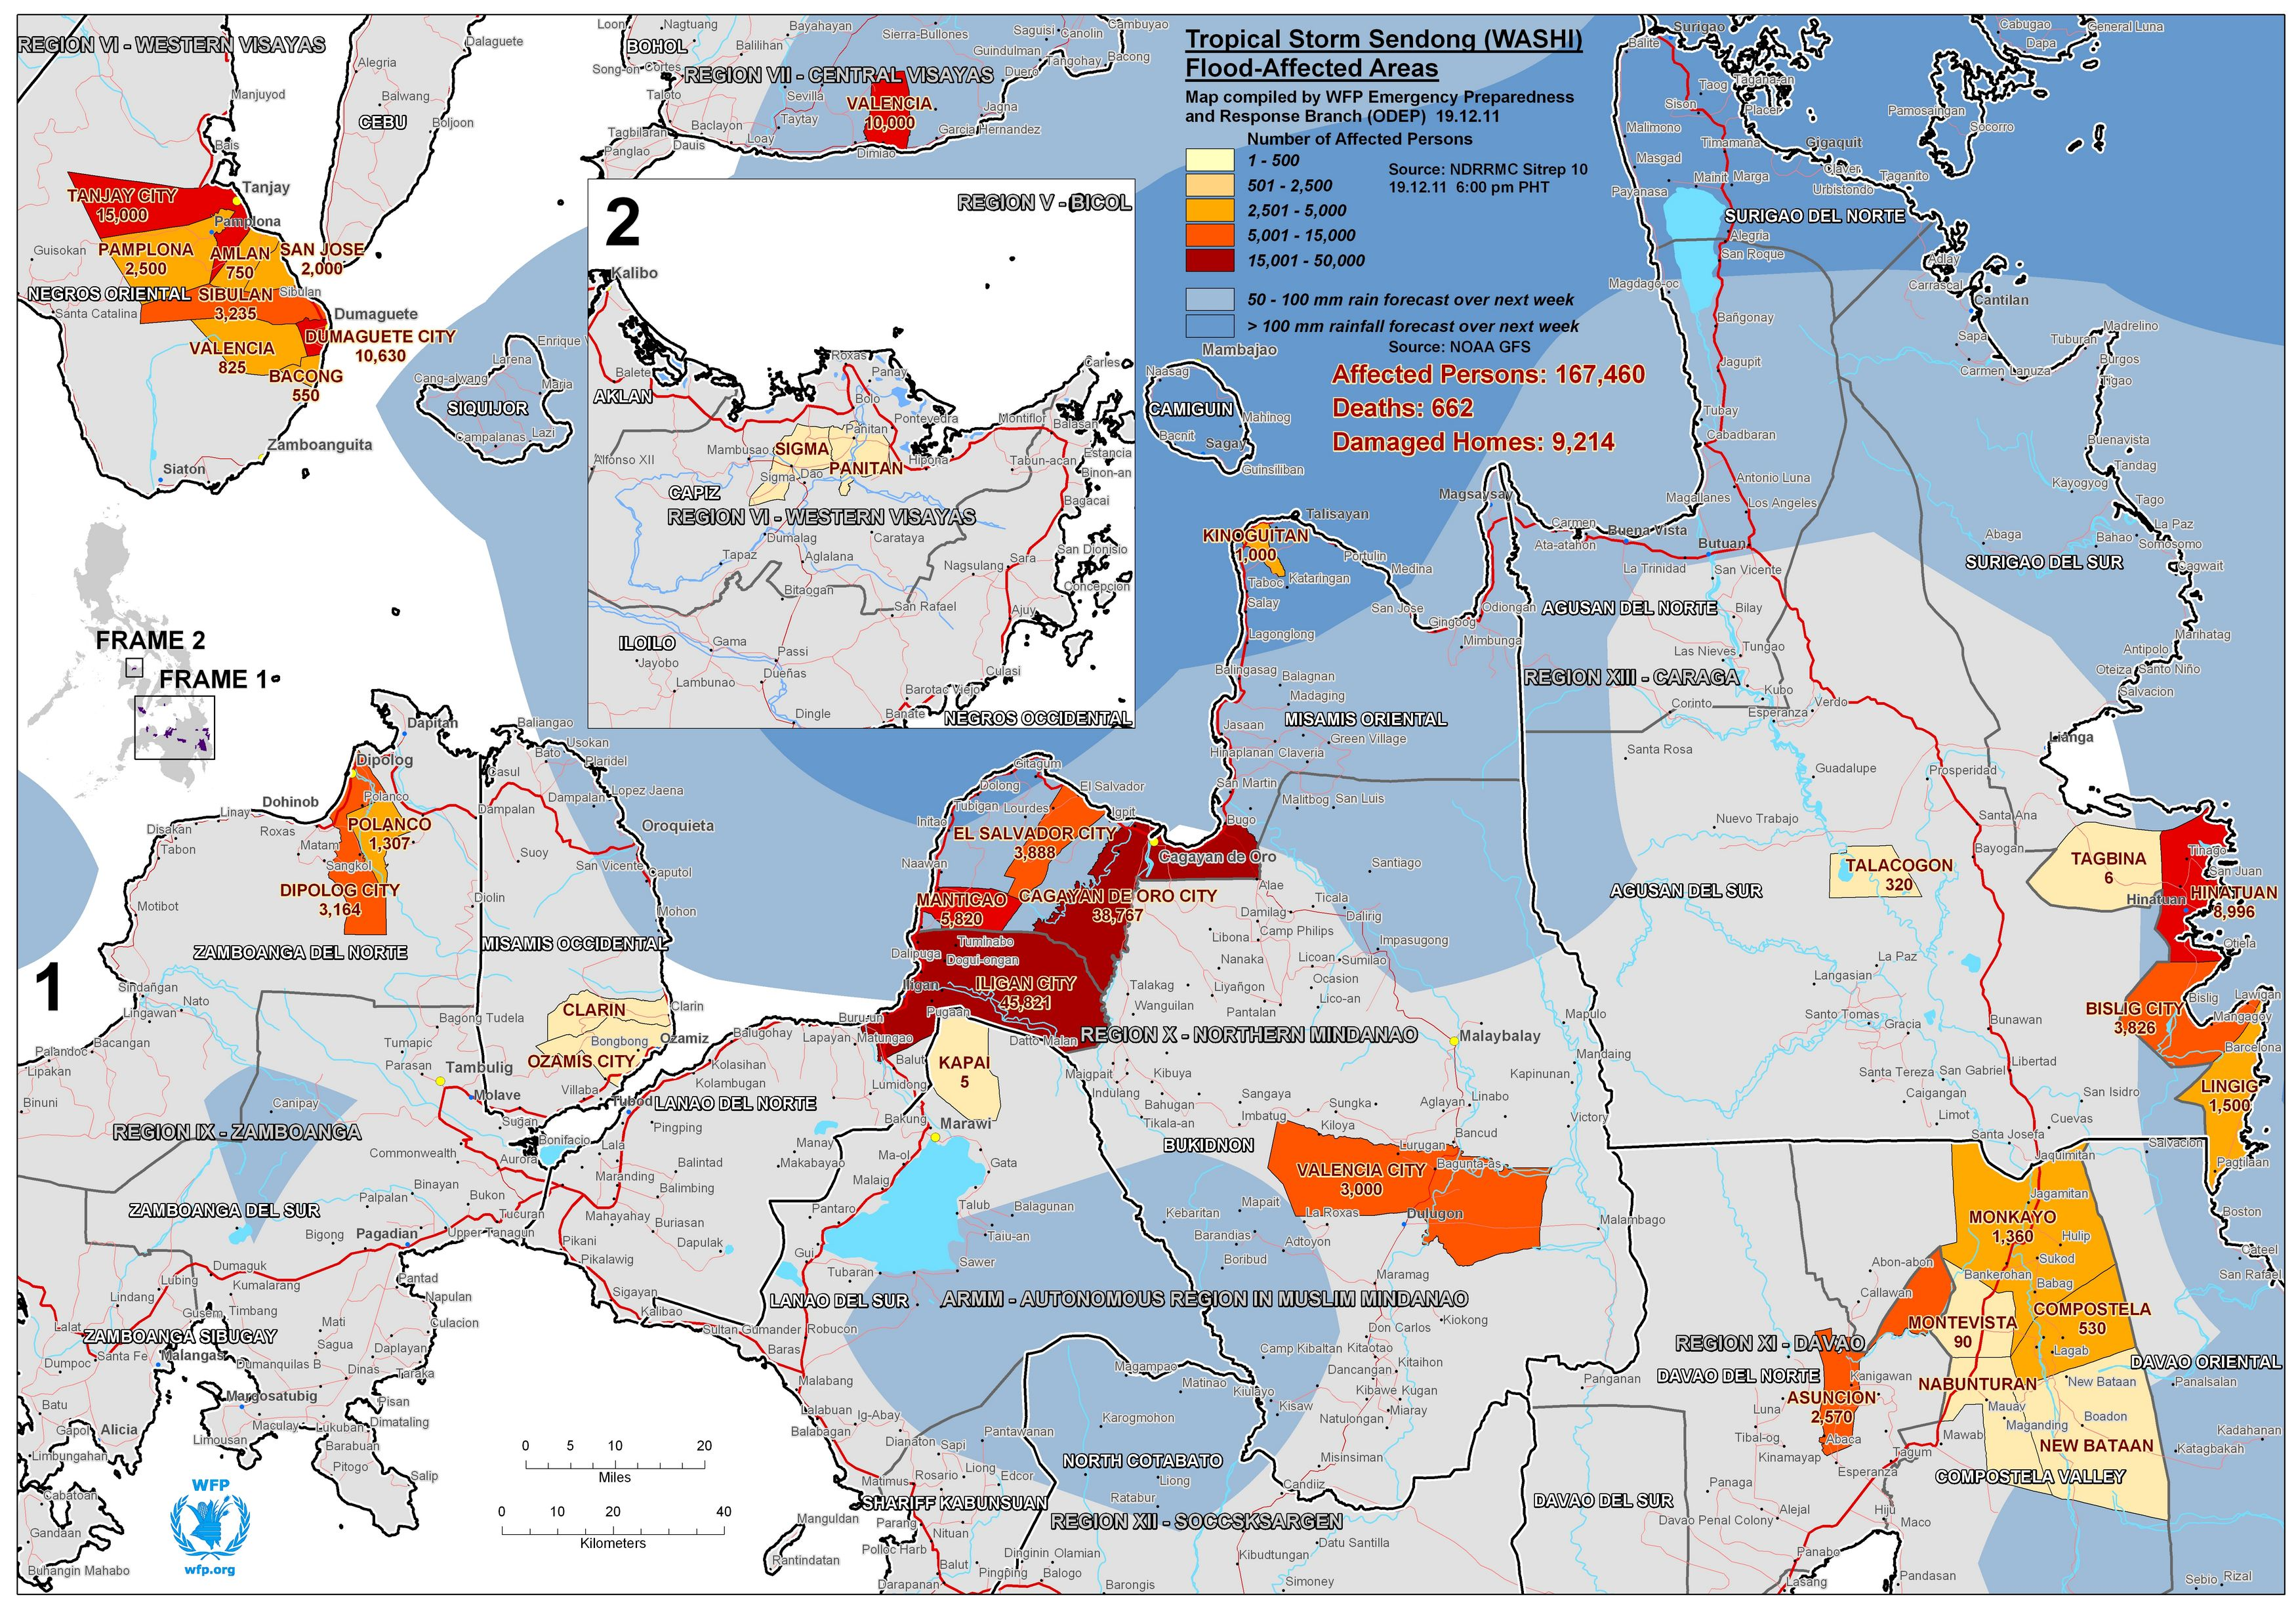 Regions on Mindanao Island in the Philippines affected by Tropical Cyclone Washi on 16–17 December 2011